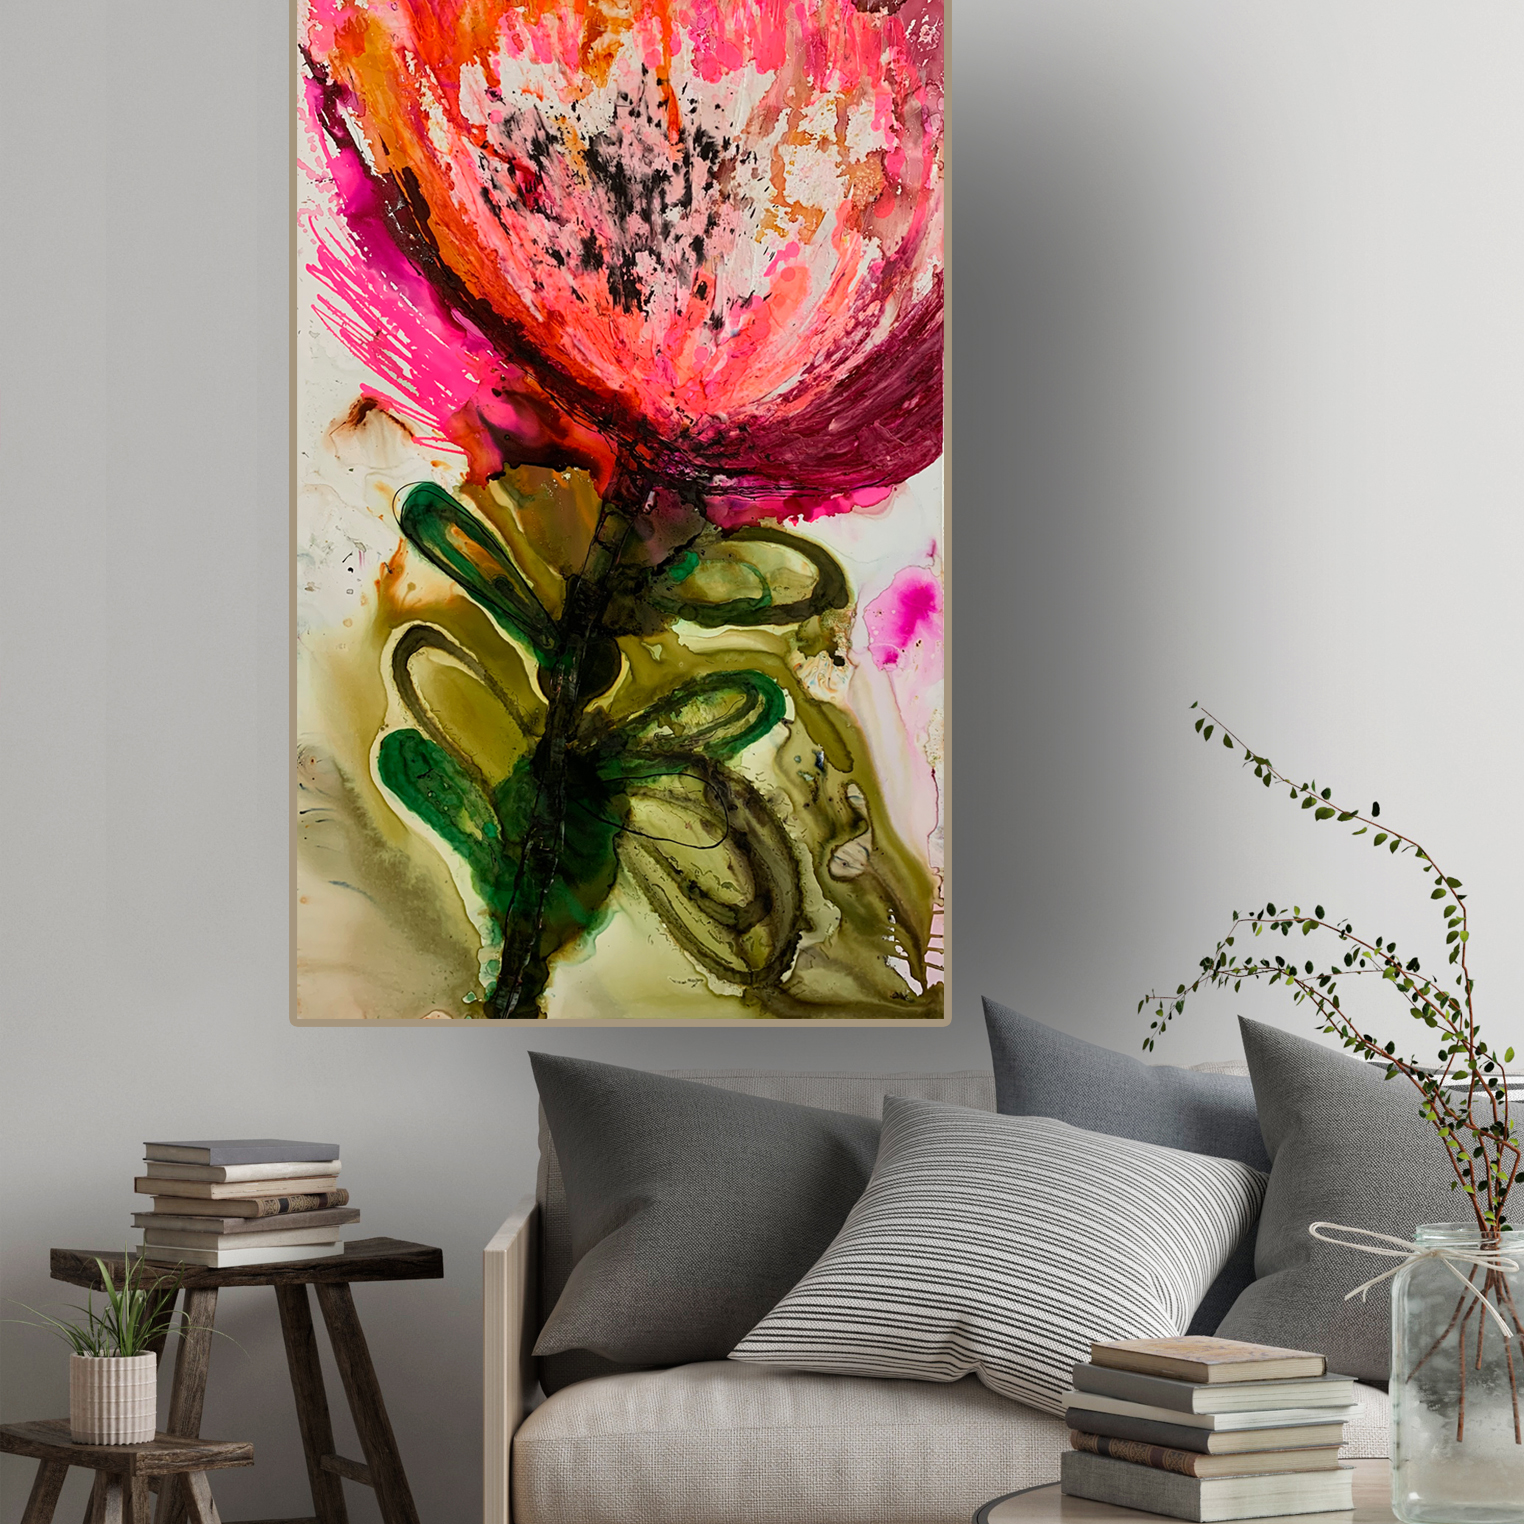 Abstract Protea painting 'Pretty in Pink' by Australian artist Jessica Skye Baker at the Baker Collection